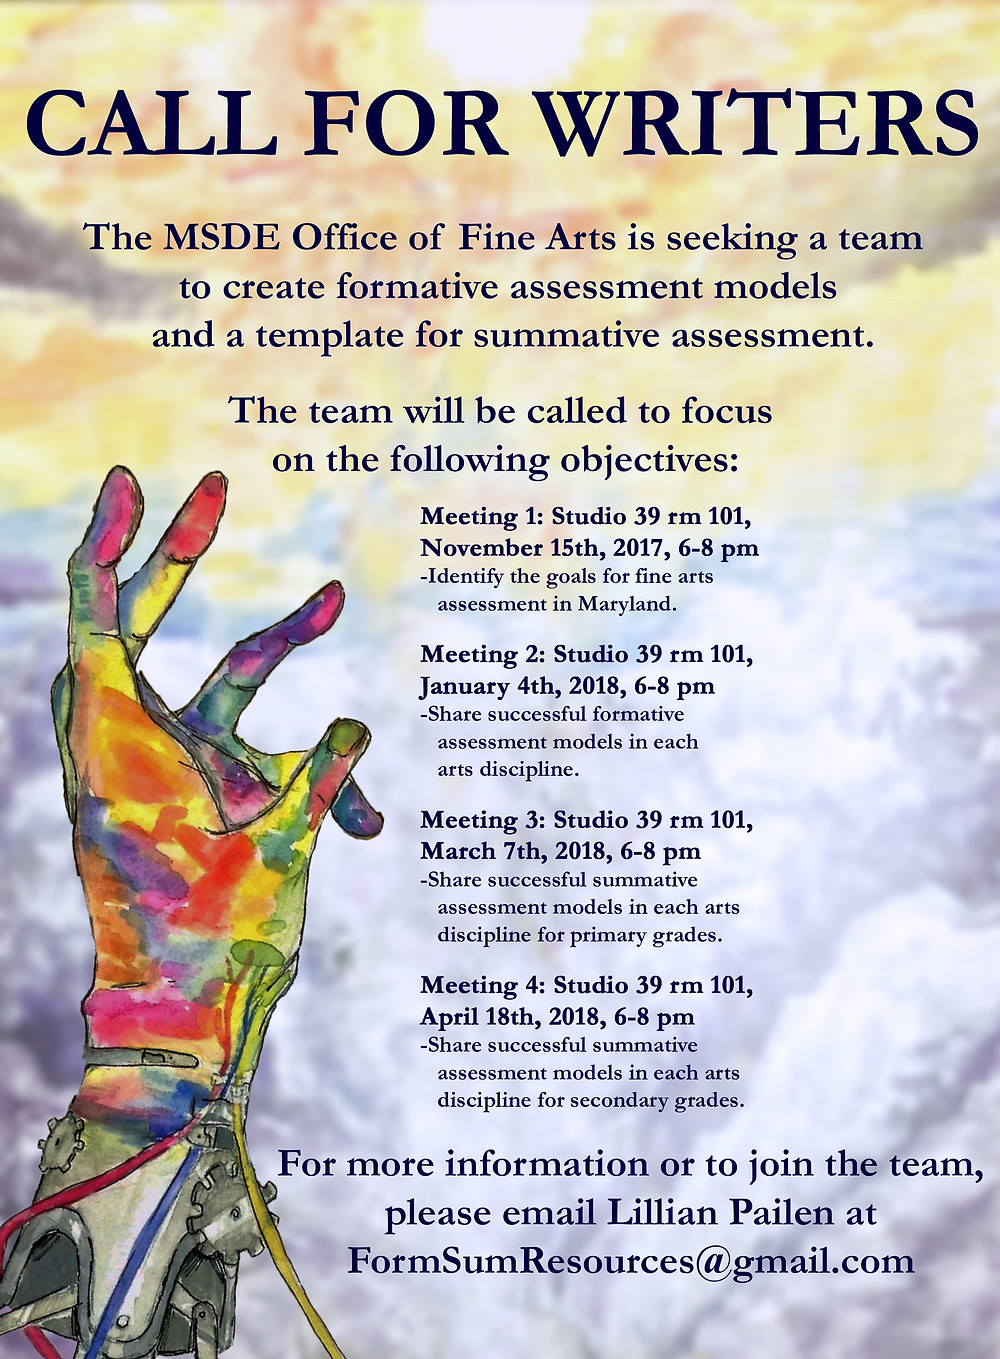 Call for writers from the MSDE Fine Arts Office